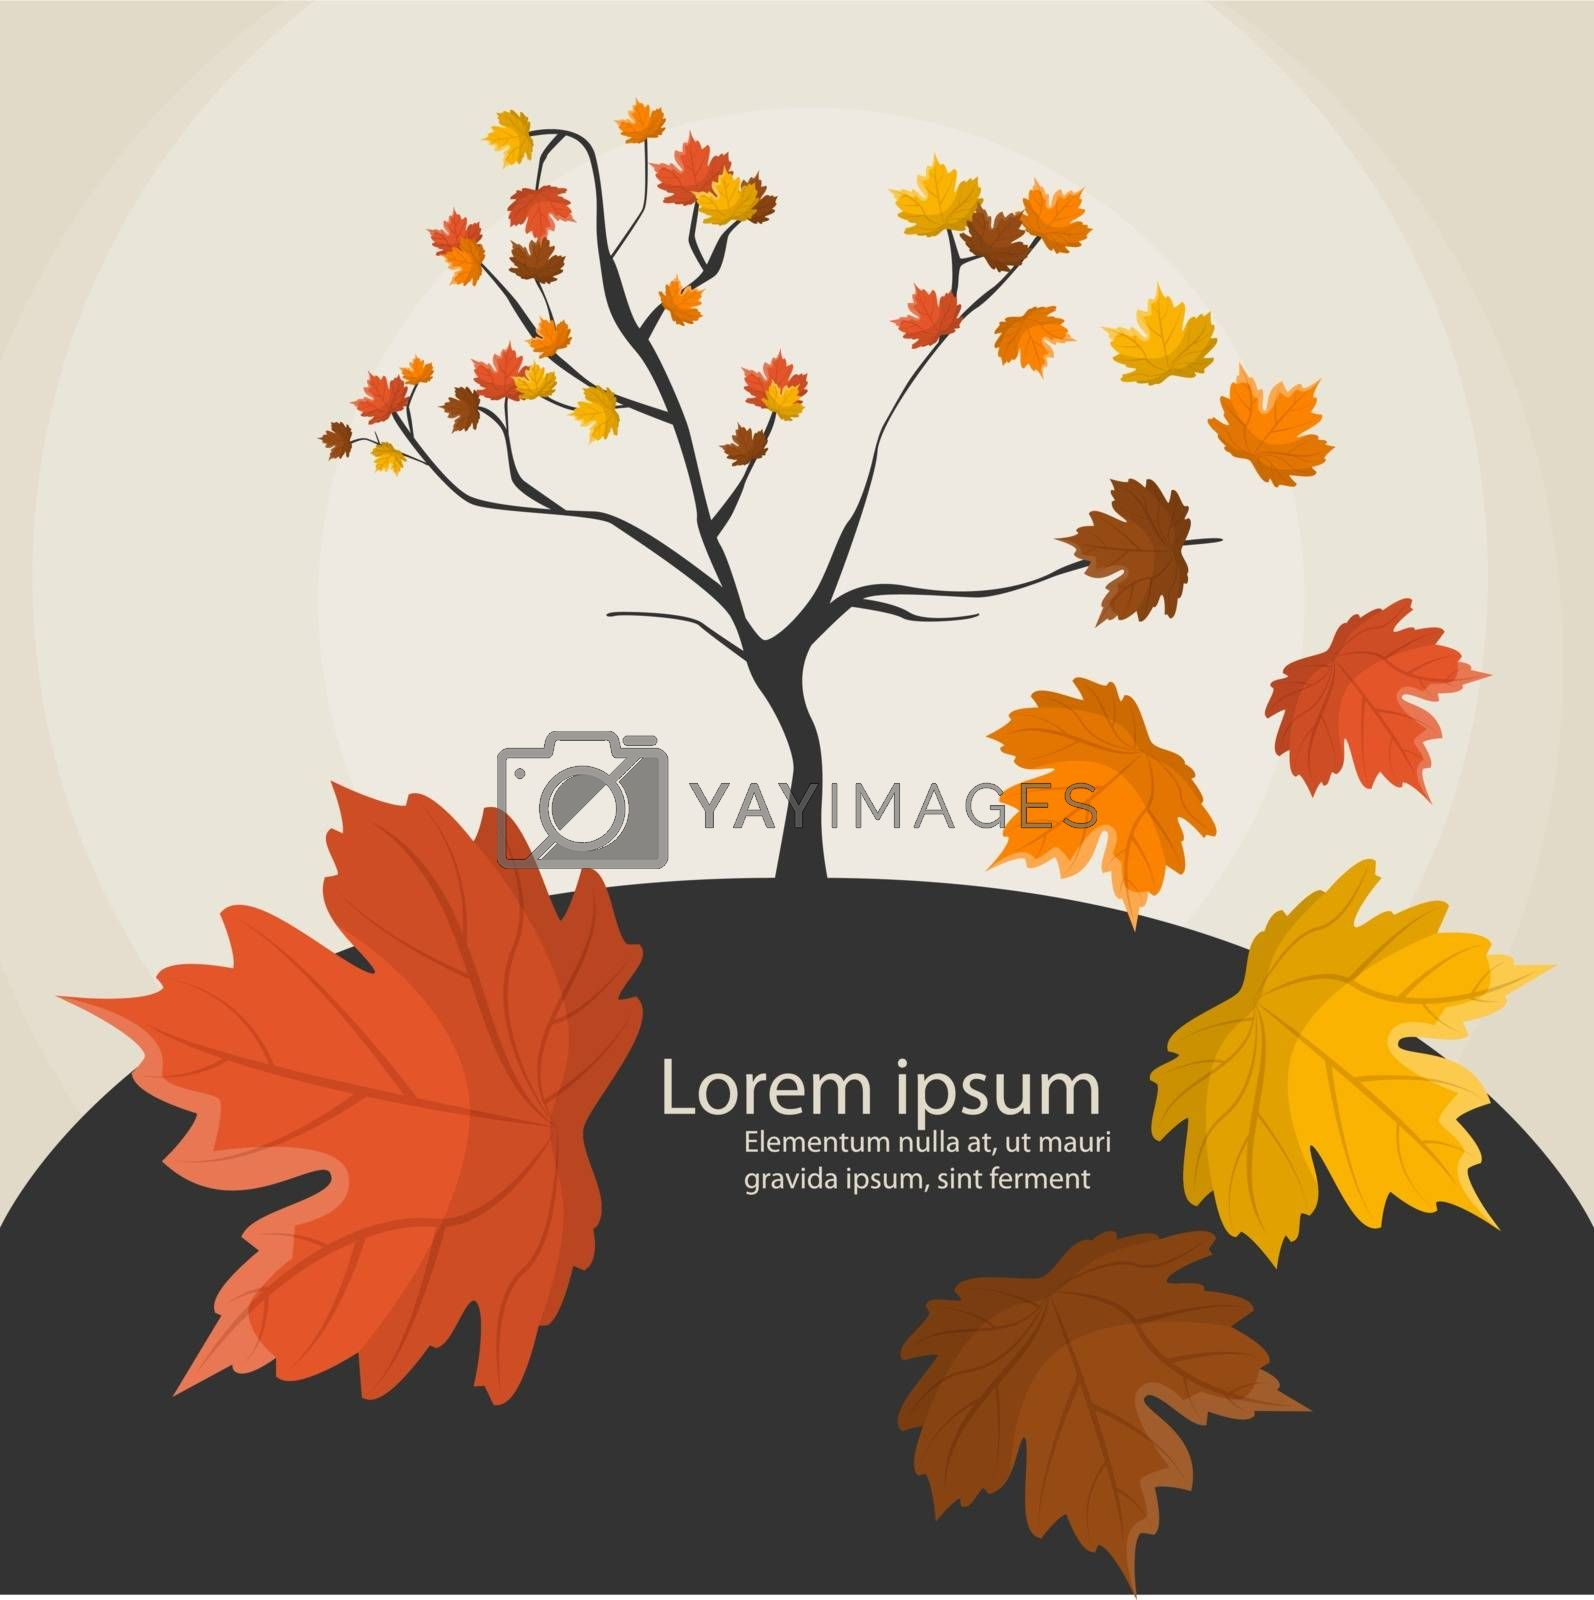 Vector funny illustration with tree and playful leaves